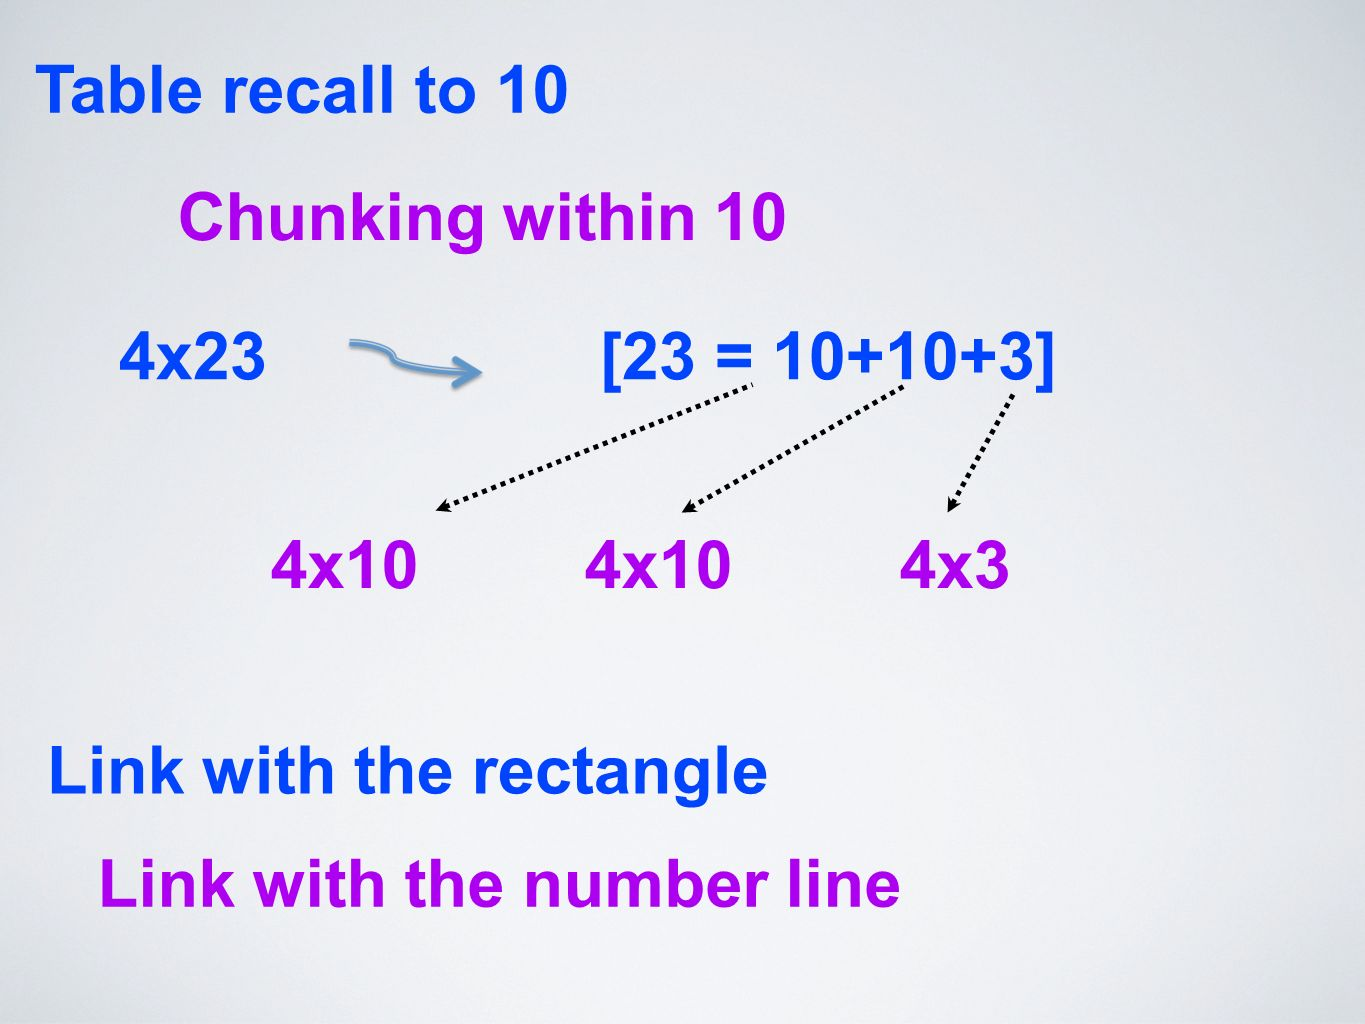 Table recall to 10 Chunking within 10 4x10 4x10 4x3 Link with the rectangle 4x23 [23 = 10+10+3] Link with the number line